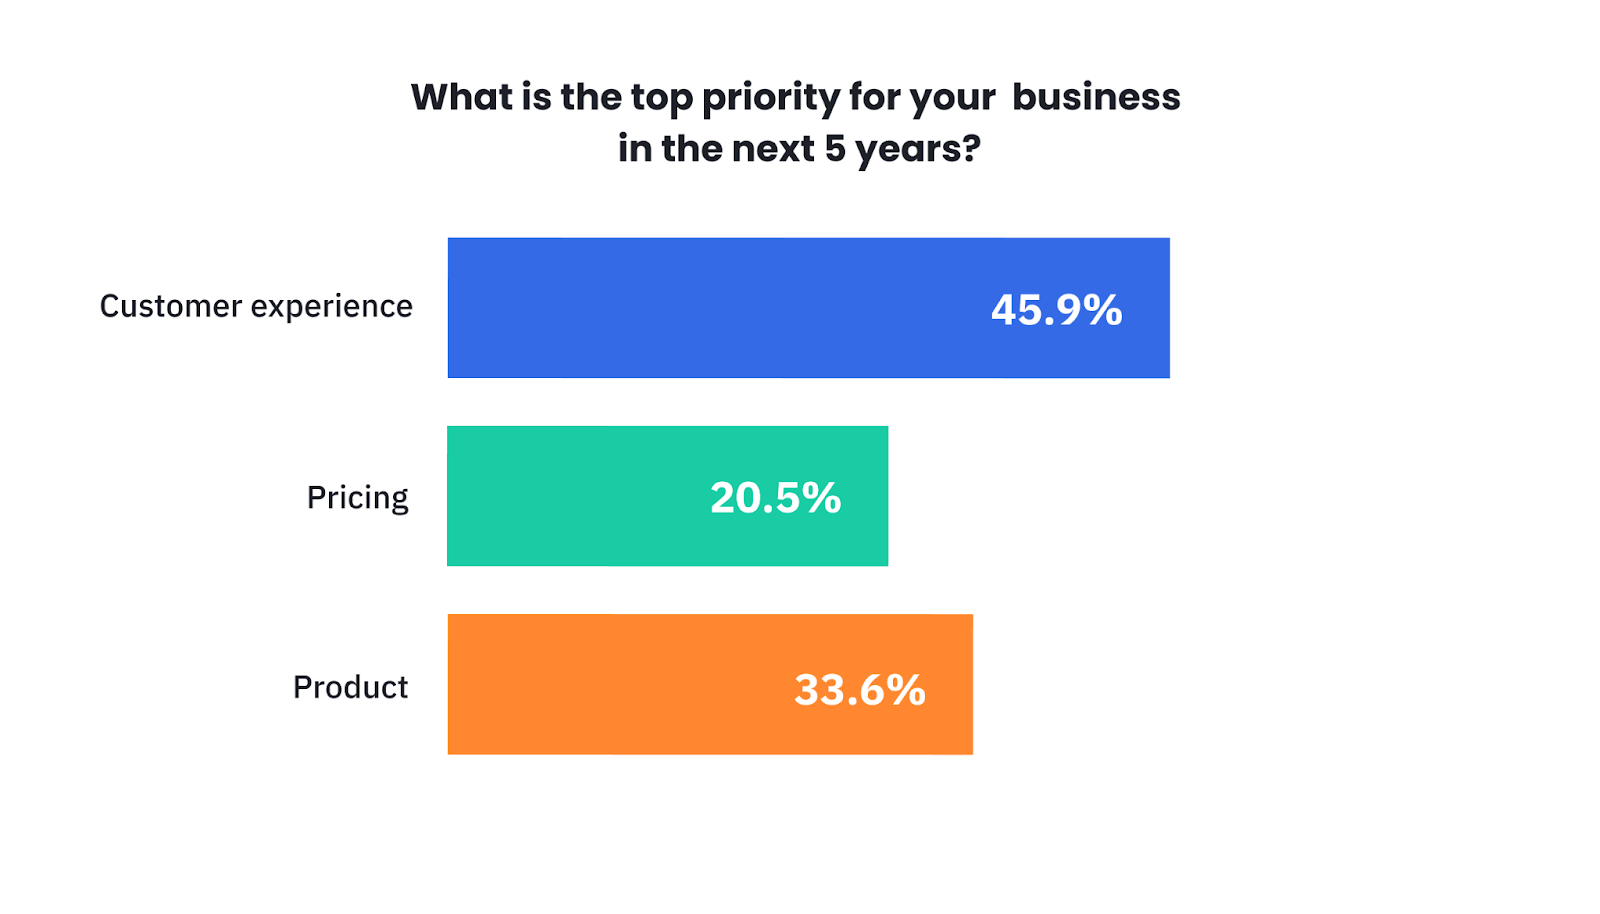 SuperOffice survey shows that businesses prioritize customer experience